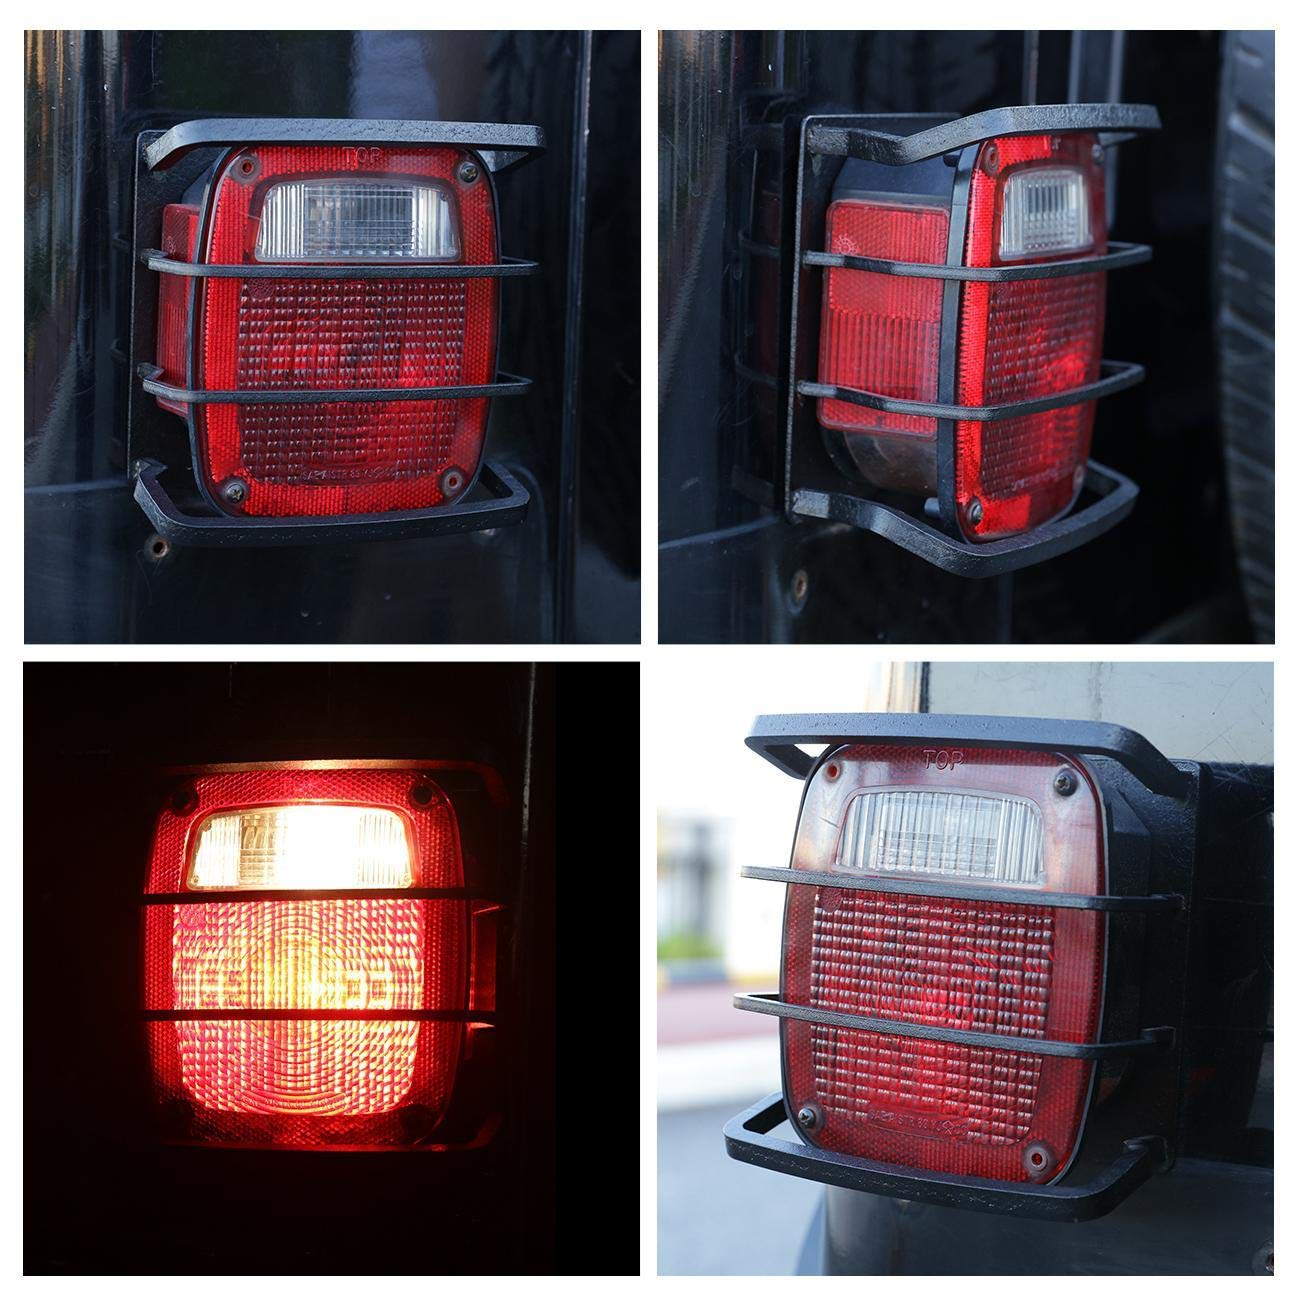 ALAVENTE 2 Pcs Exterior Rear Tail Light Guard Cover Taillight Protector Shade Skull Skeleton Shape Hollow Out for Jeep Wrangler 1987-2006 TJ//YJ